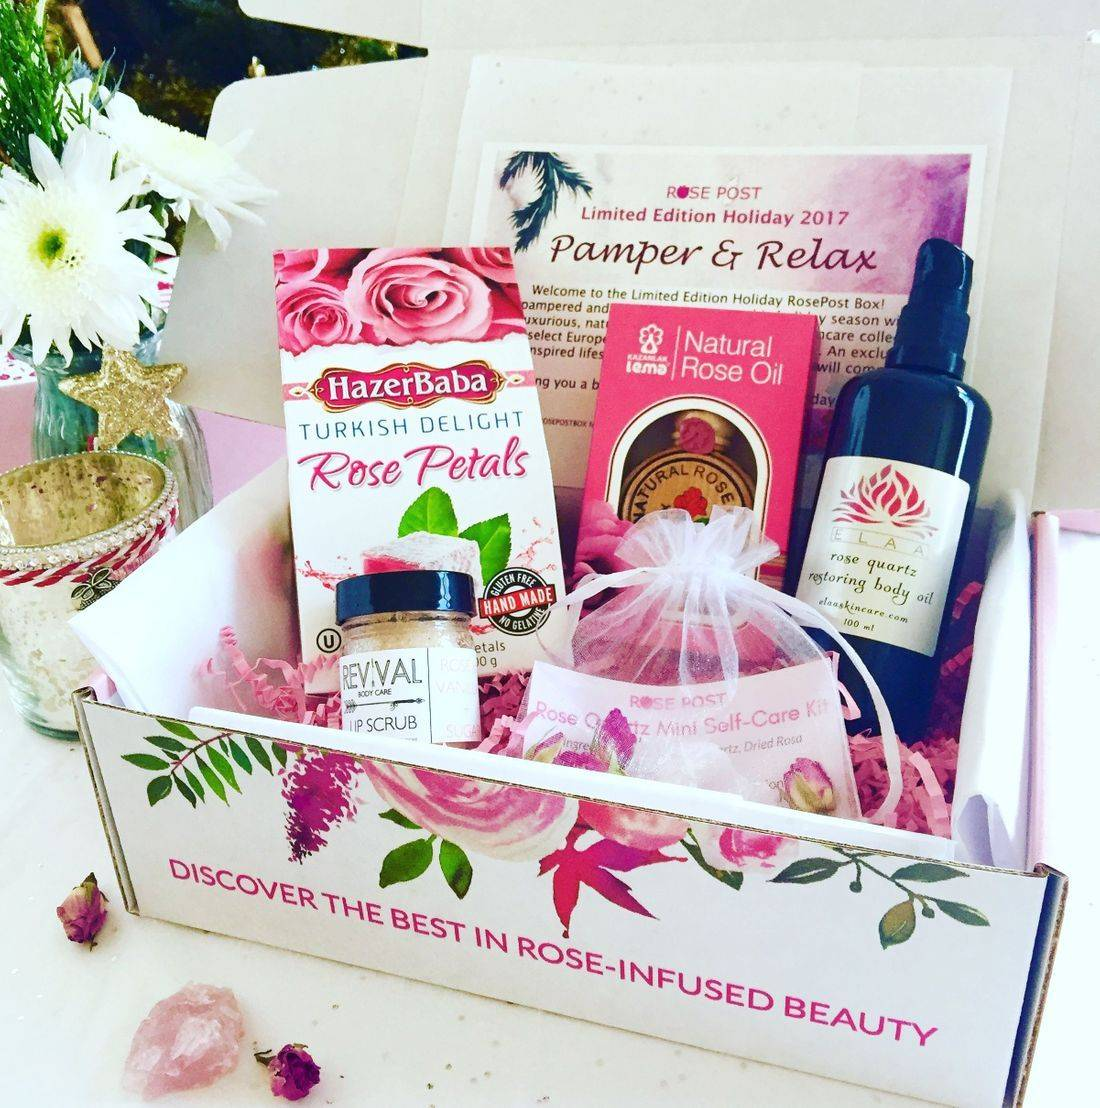 RosePost Limited Edition Holiday Box, RosePost Box, Limited Edition Box